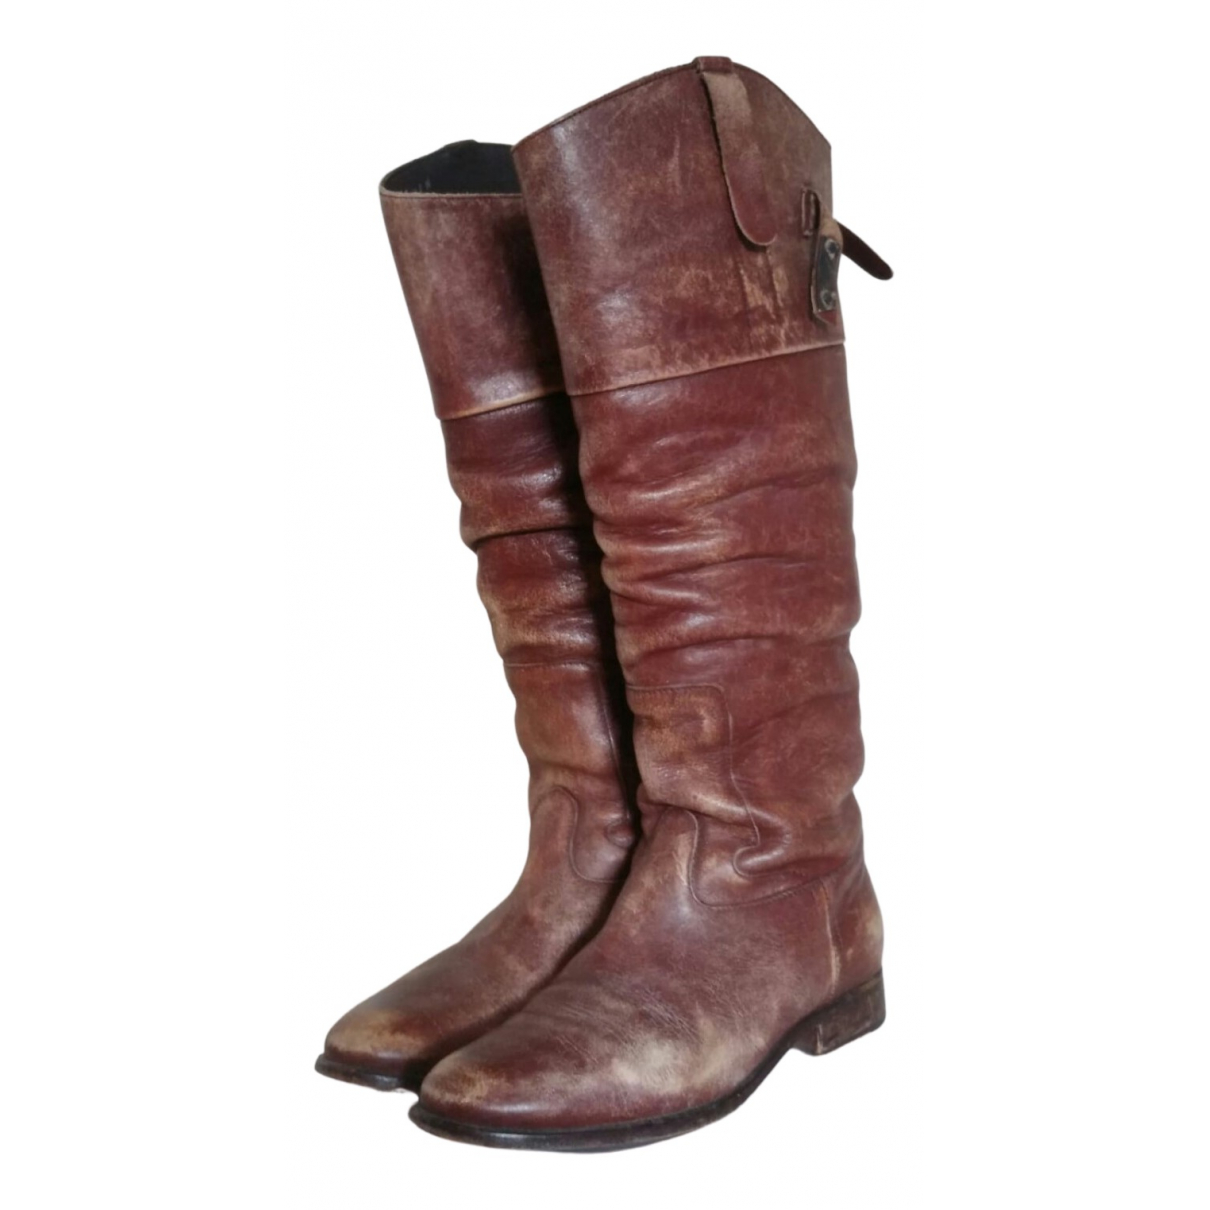 Golden Goose N Brown Leather Boots for Women 38 EU